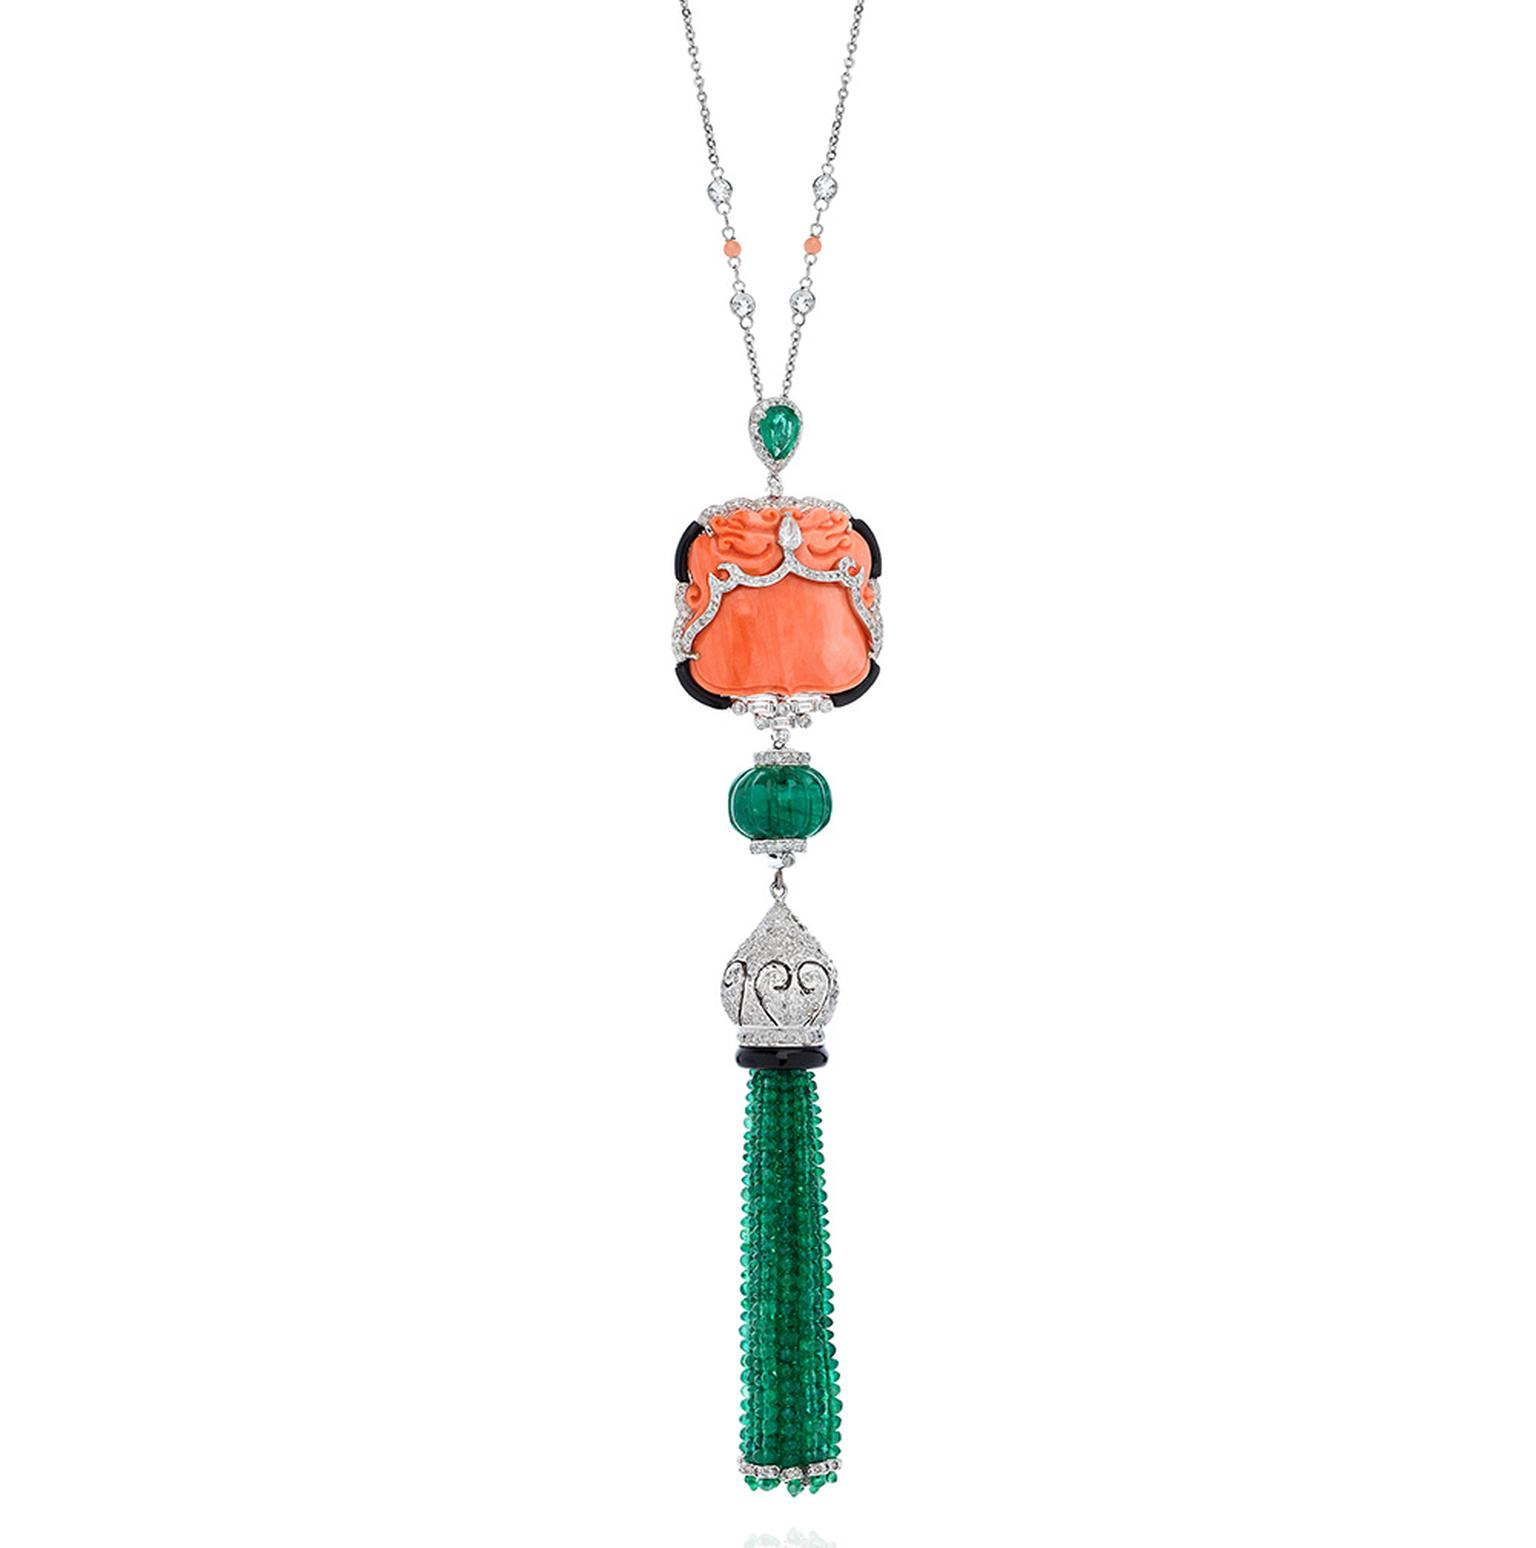 White gold, emerald, coral and diamond tassel necklace by Nigaam at Talisman Gallery, Harvey Nichols, London